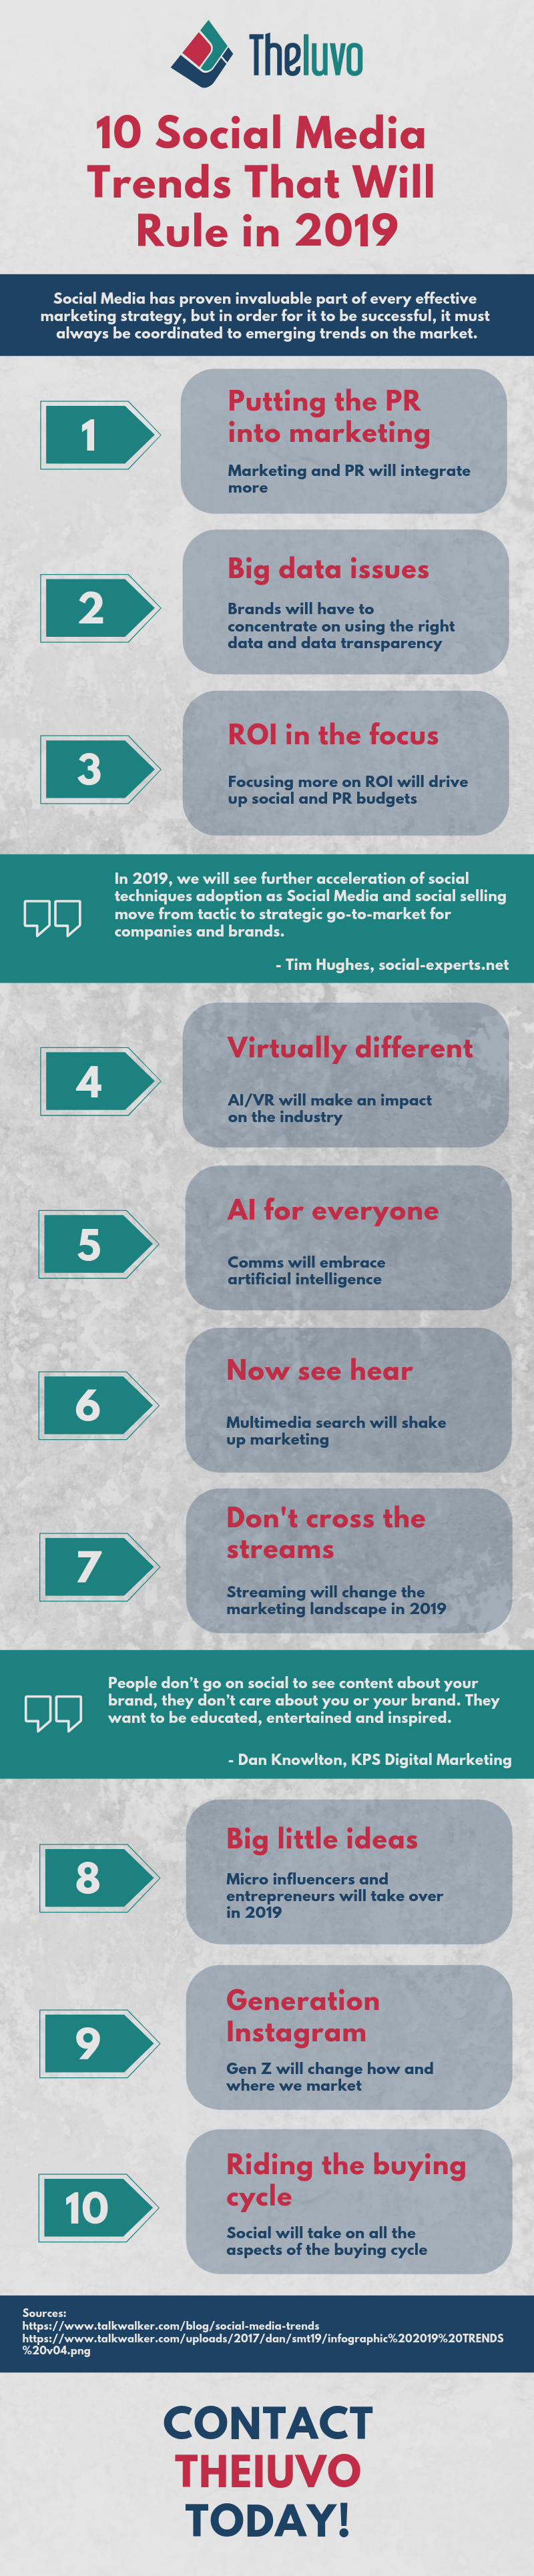 10 Social Media Trends That Will Rule in 2019 Infographic